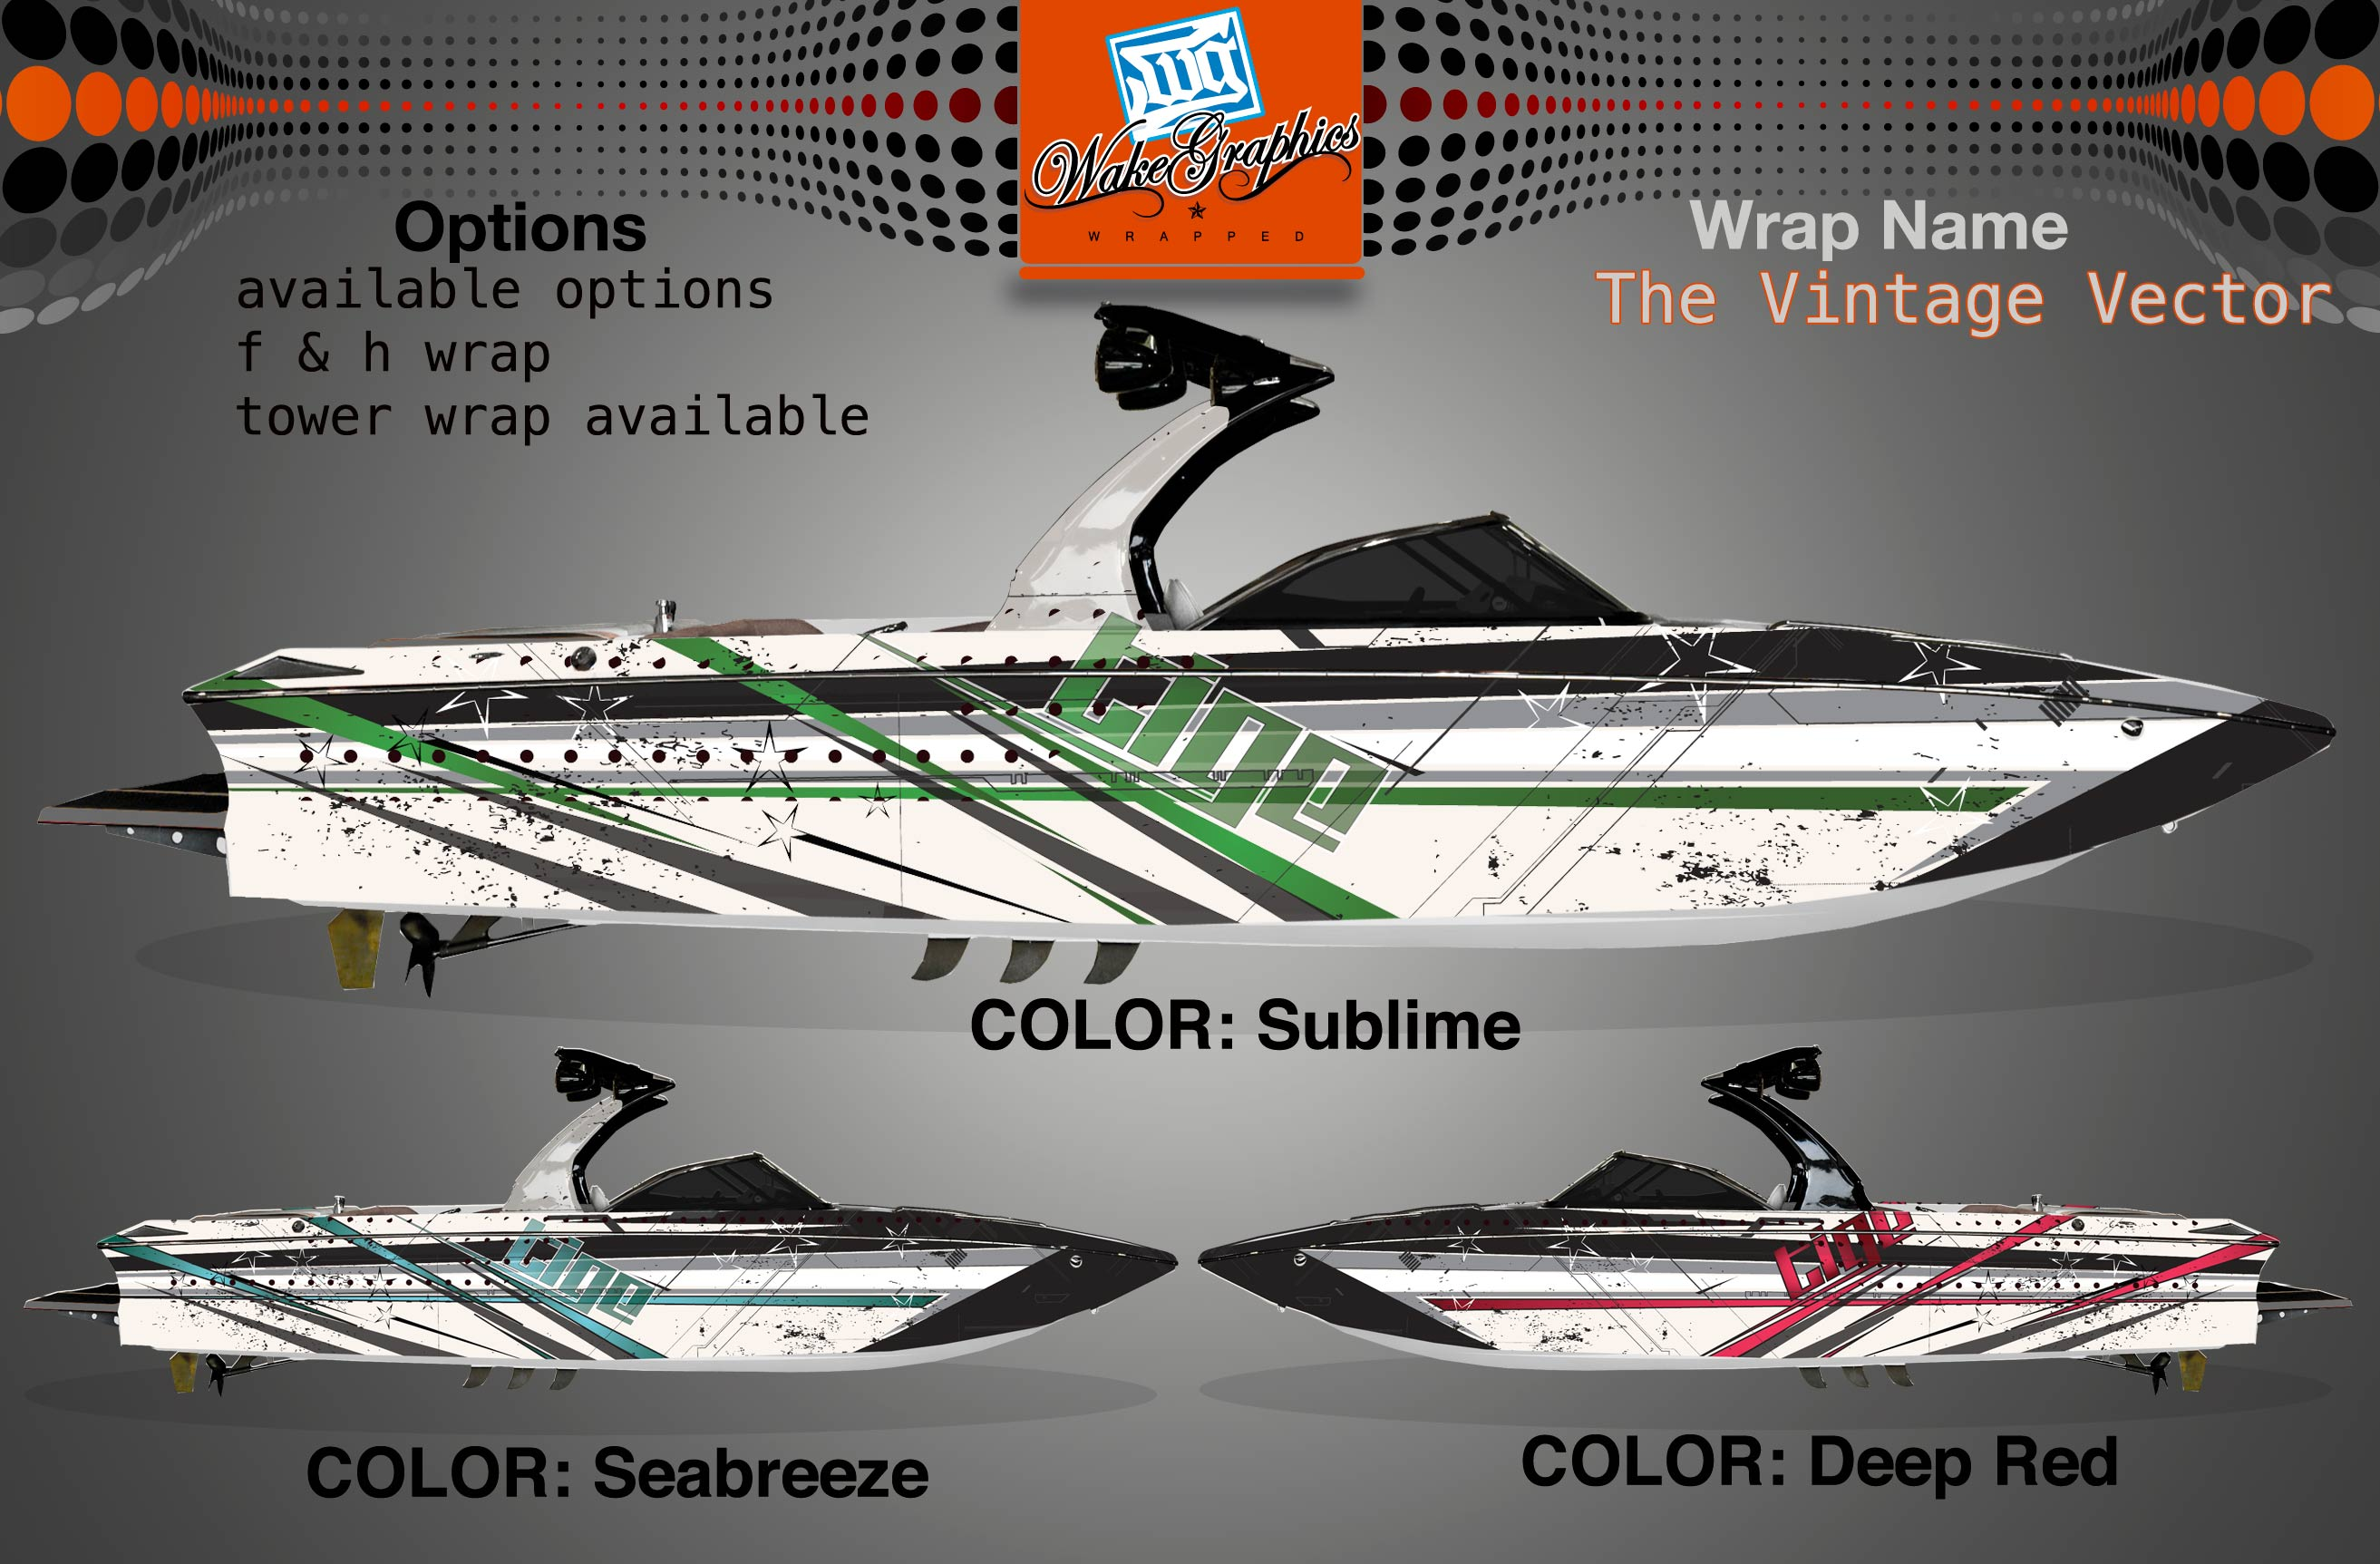 Boat Wraps The Vintage Vector Wake Graphics